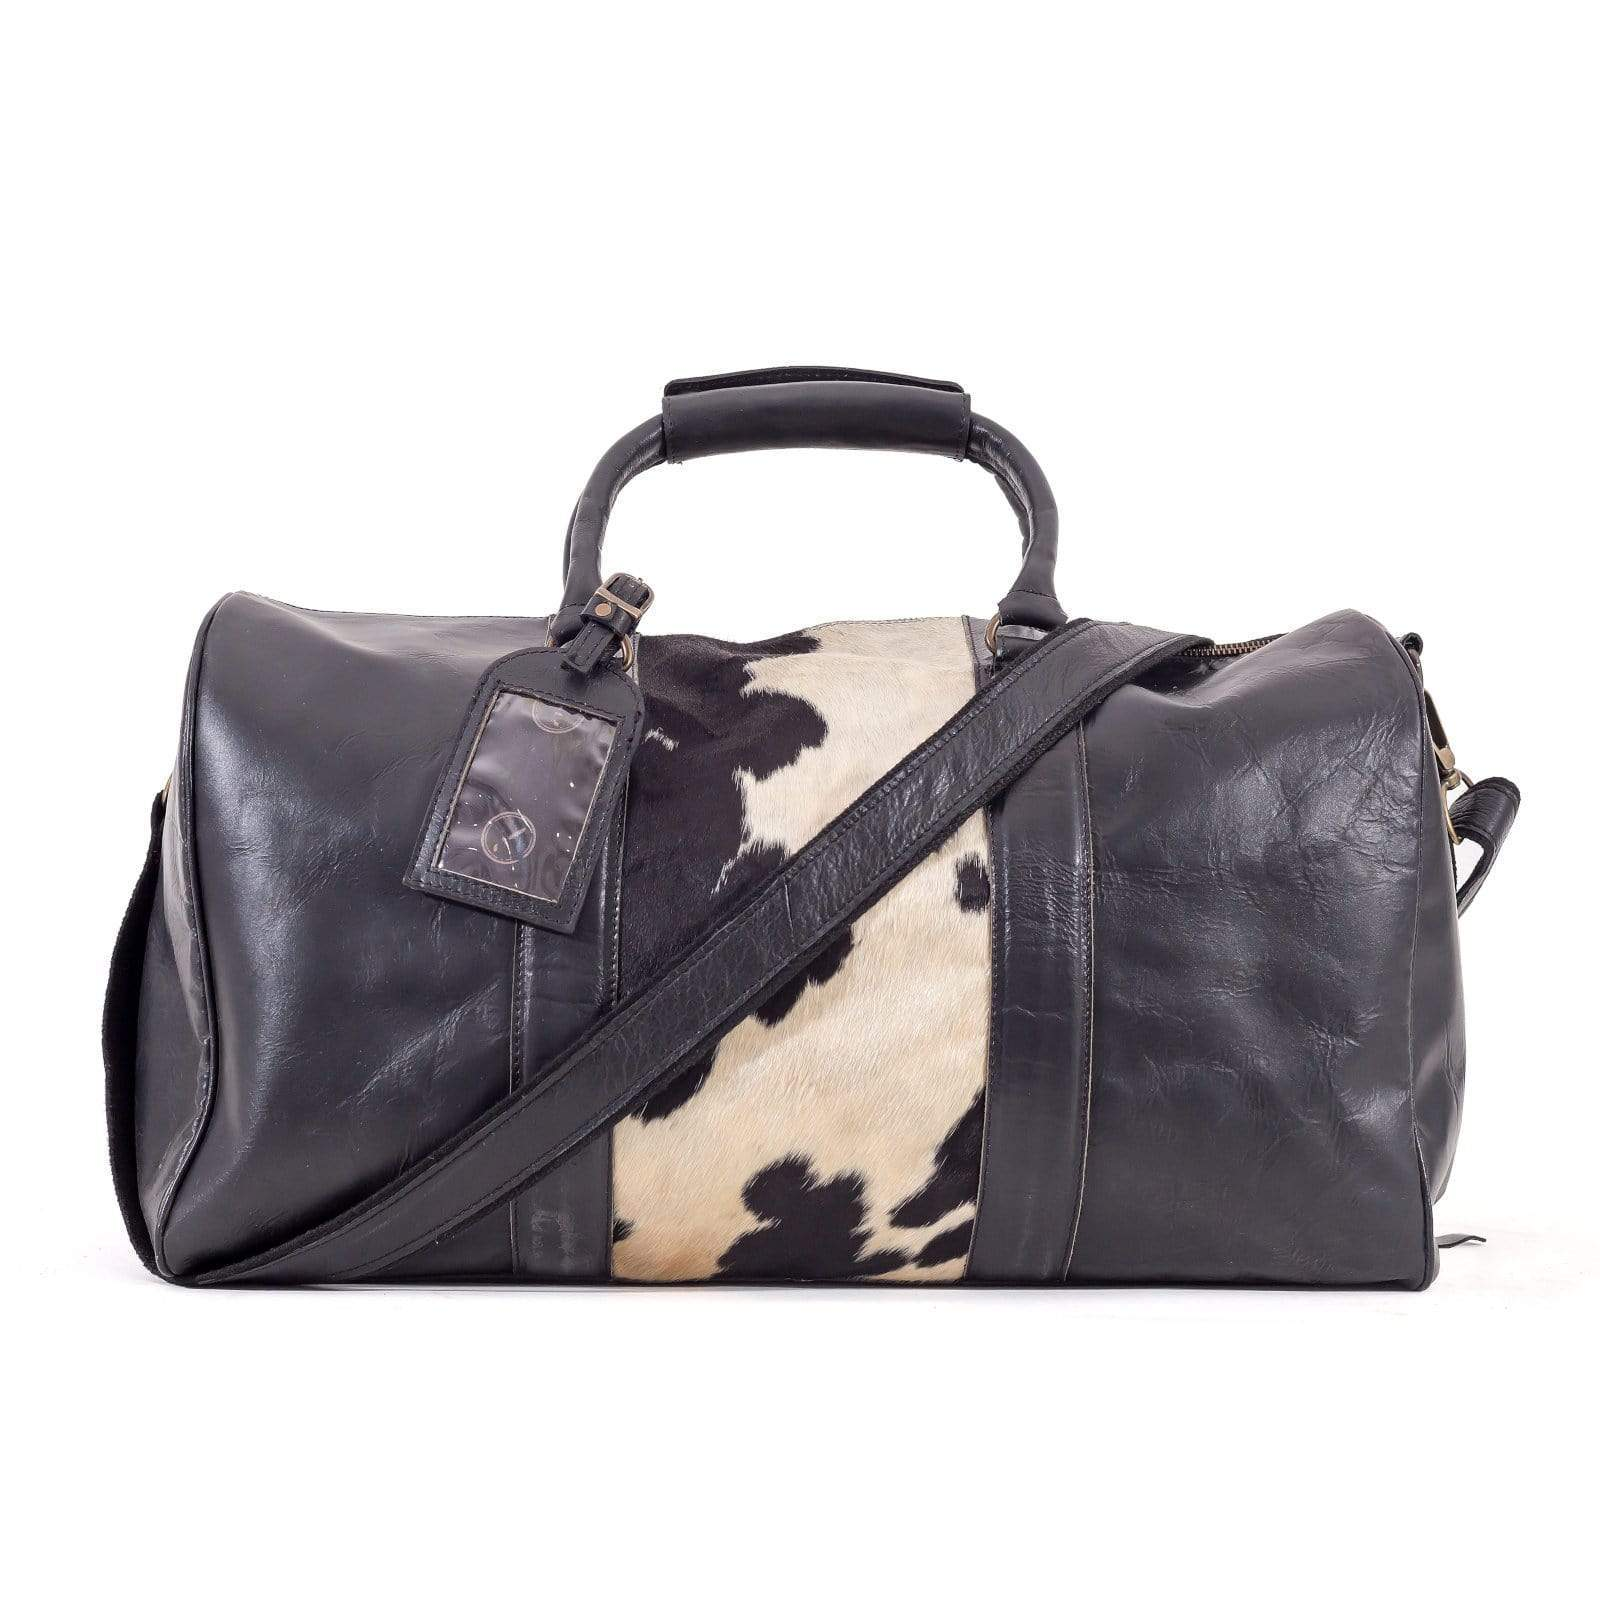 Indepal Leather BAGS Beckwith Duffle - Hide Panel